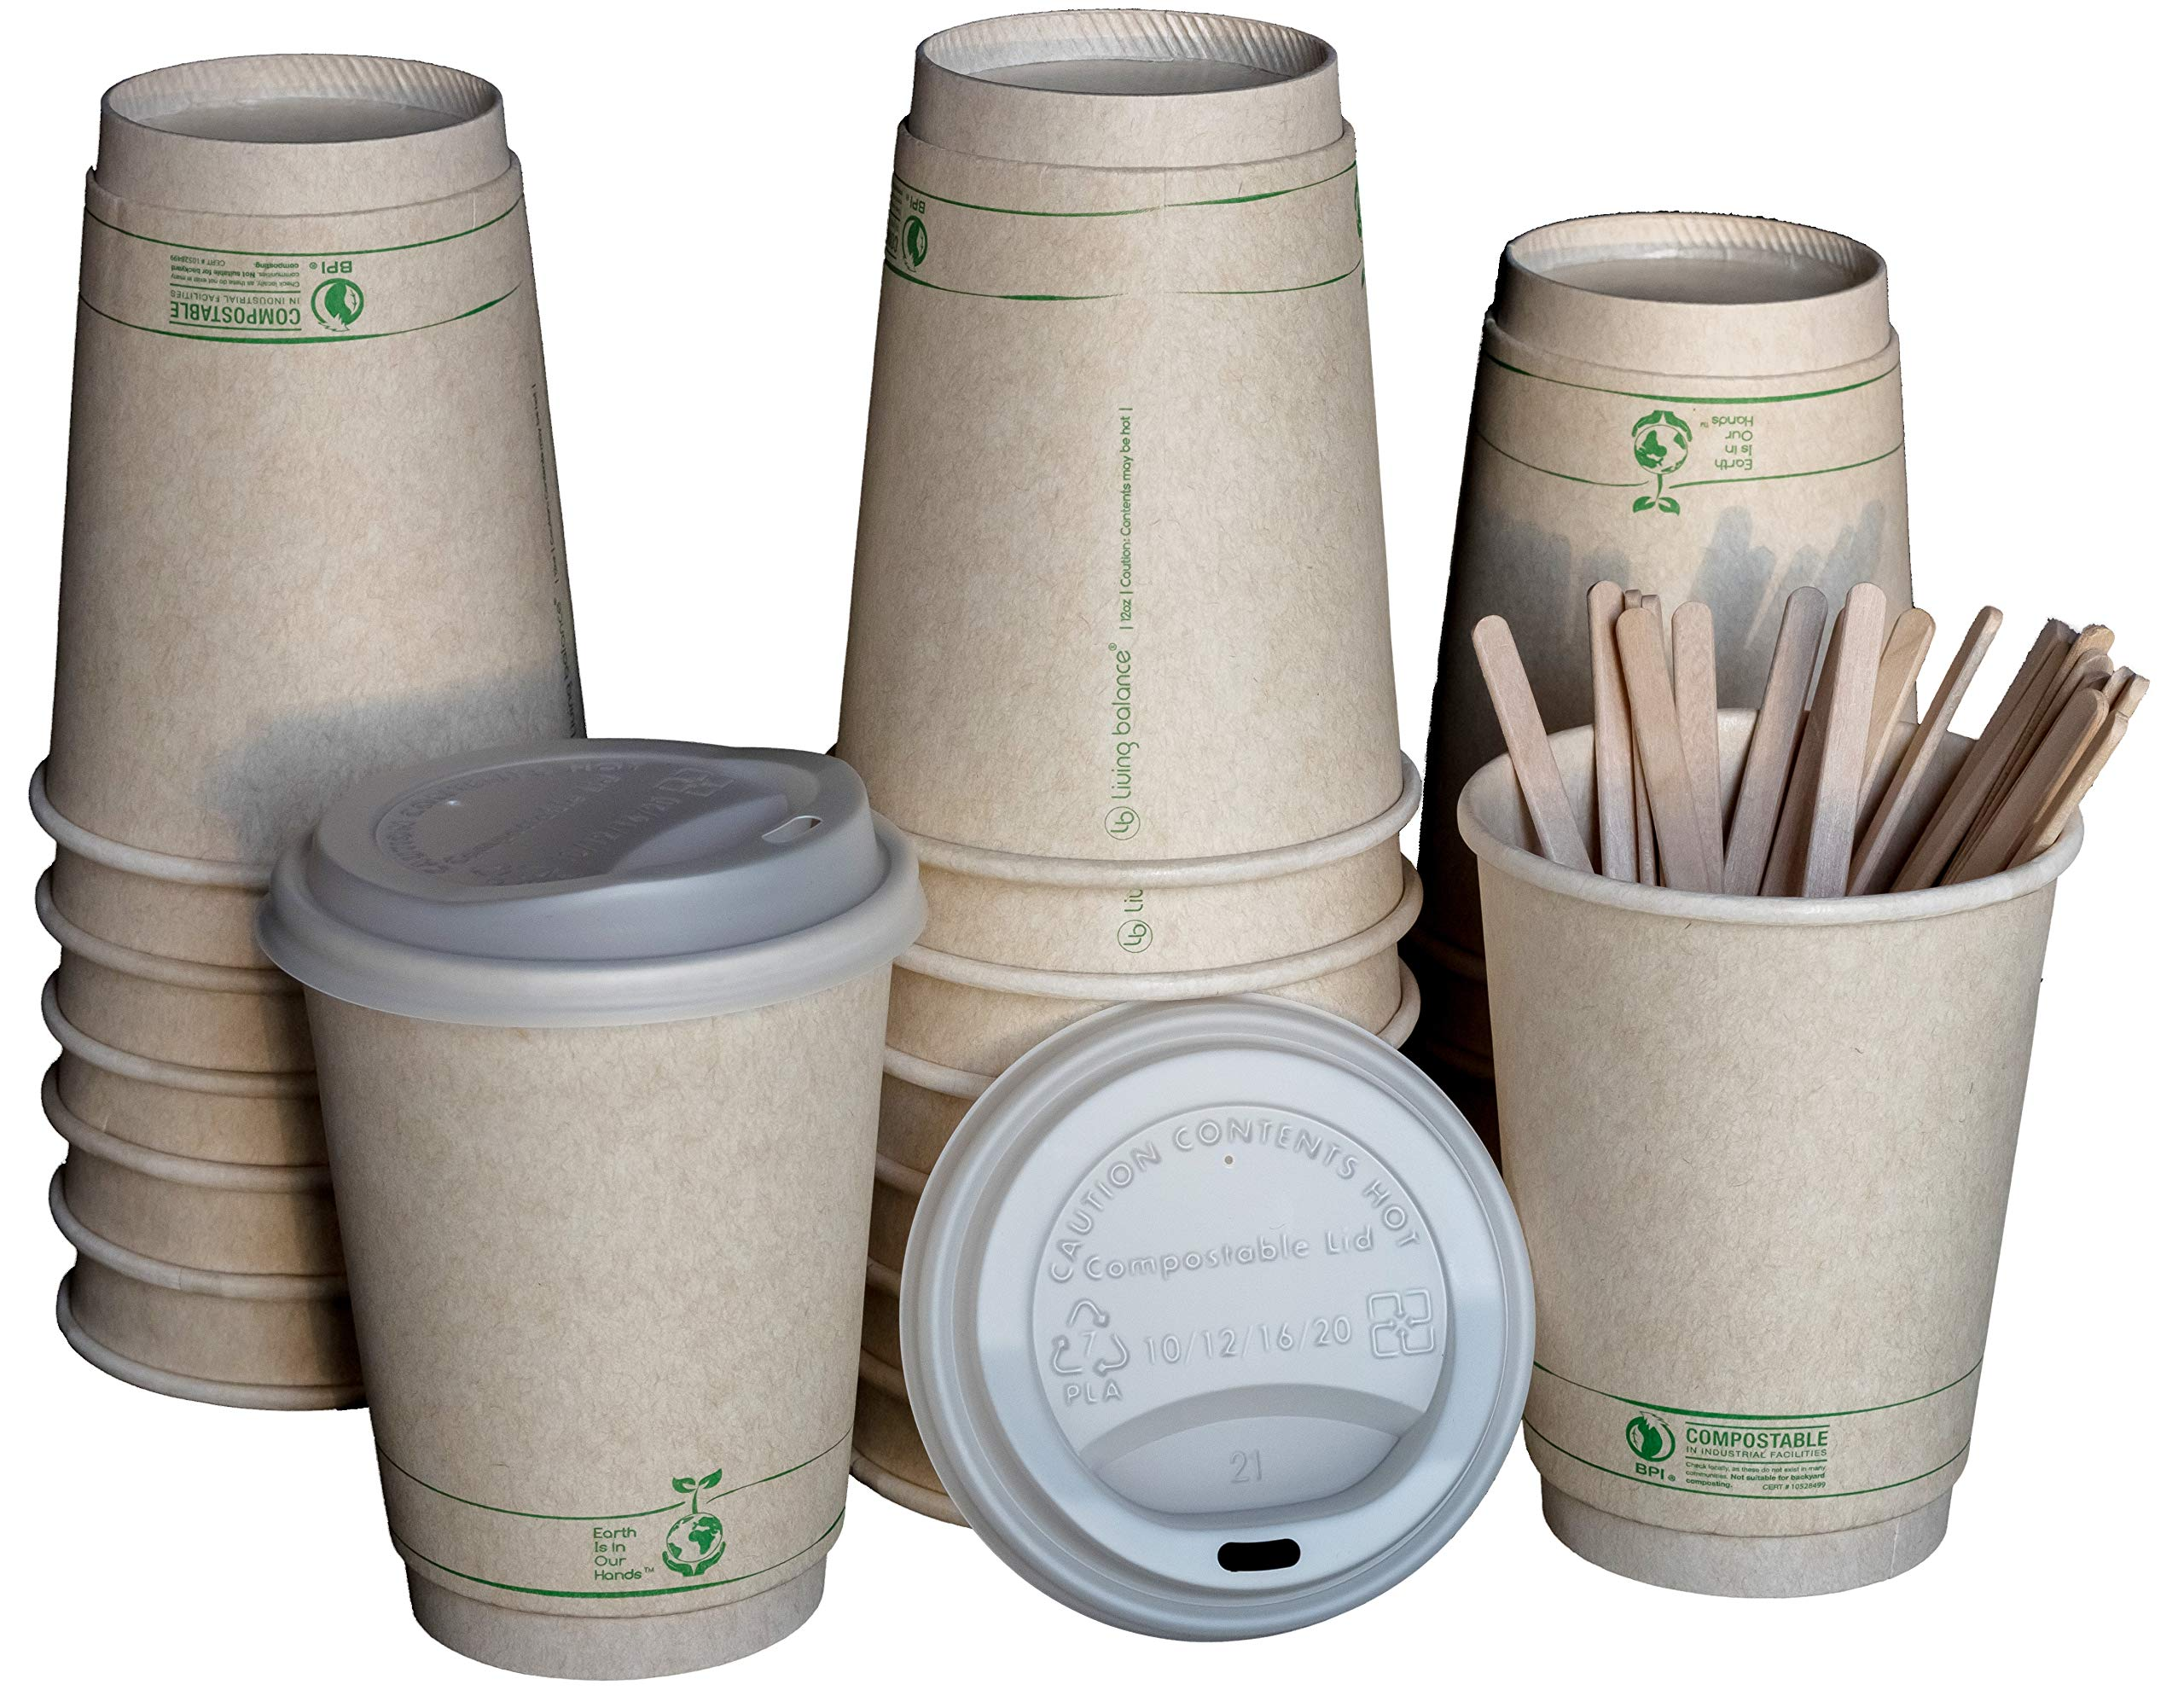 12 oz | 100 Pack 100% Compostable to go Coffee Cups with Lids, Wood Stirrers, and Integrated Sleeves |BPI Certified BIOCUPS: PLA, Eco Friendly,